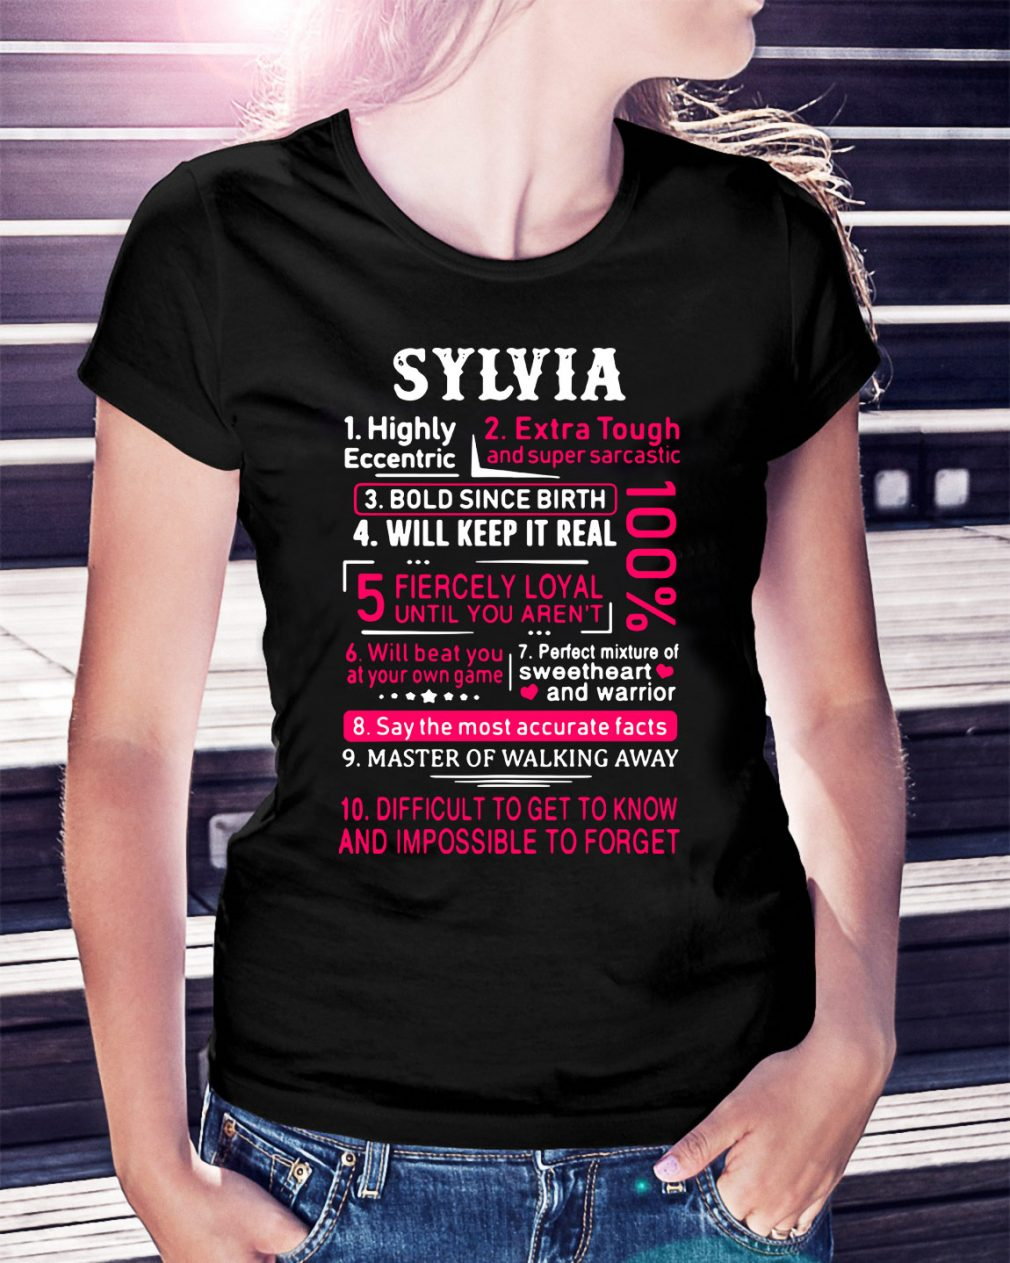 Sylvia highly eccentric extra tough and super sarcastic bold since birth Ladies Tee